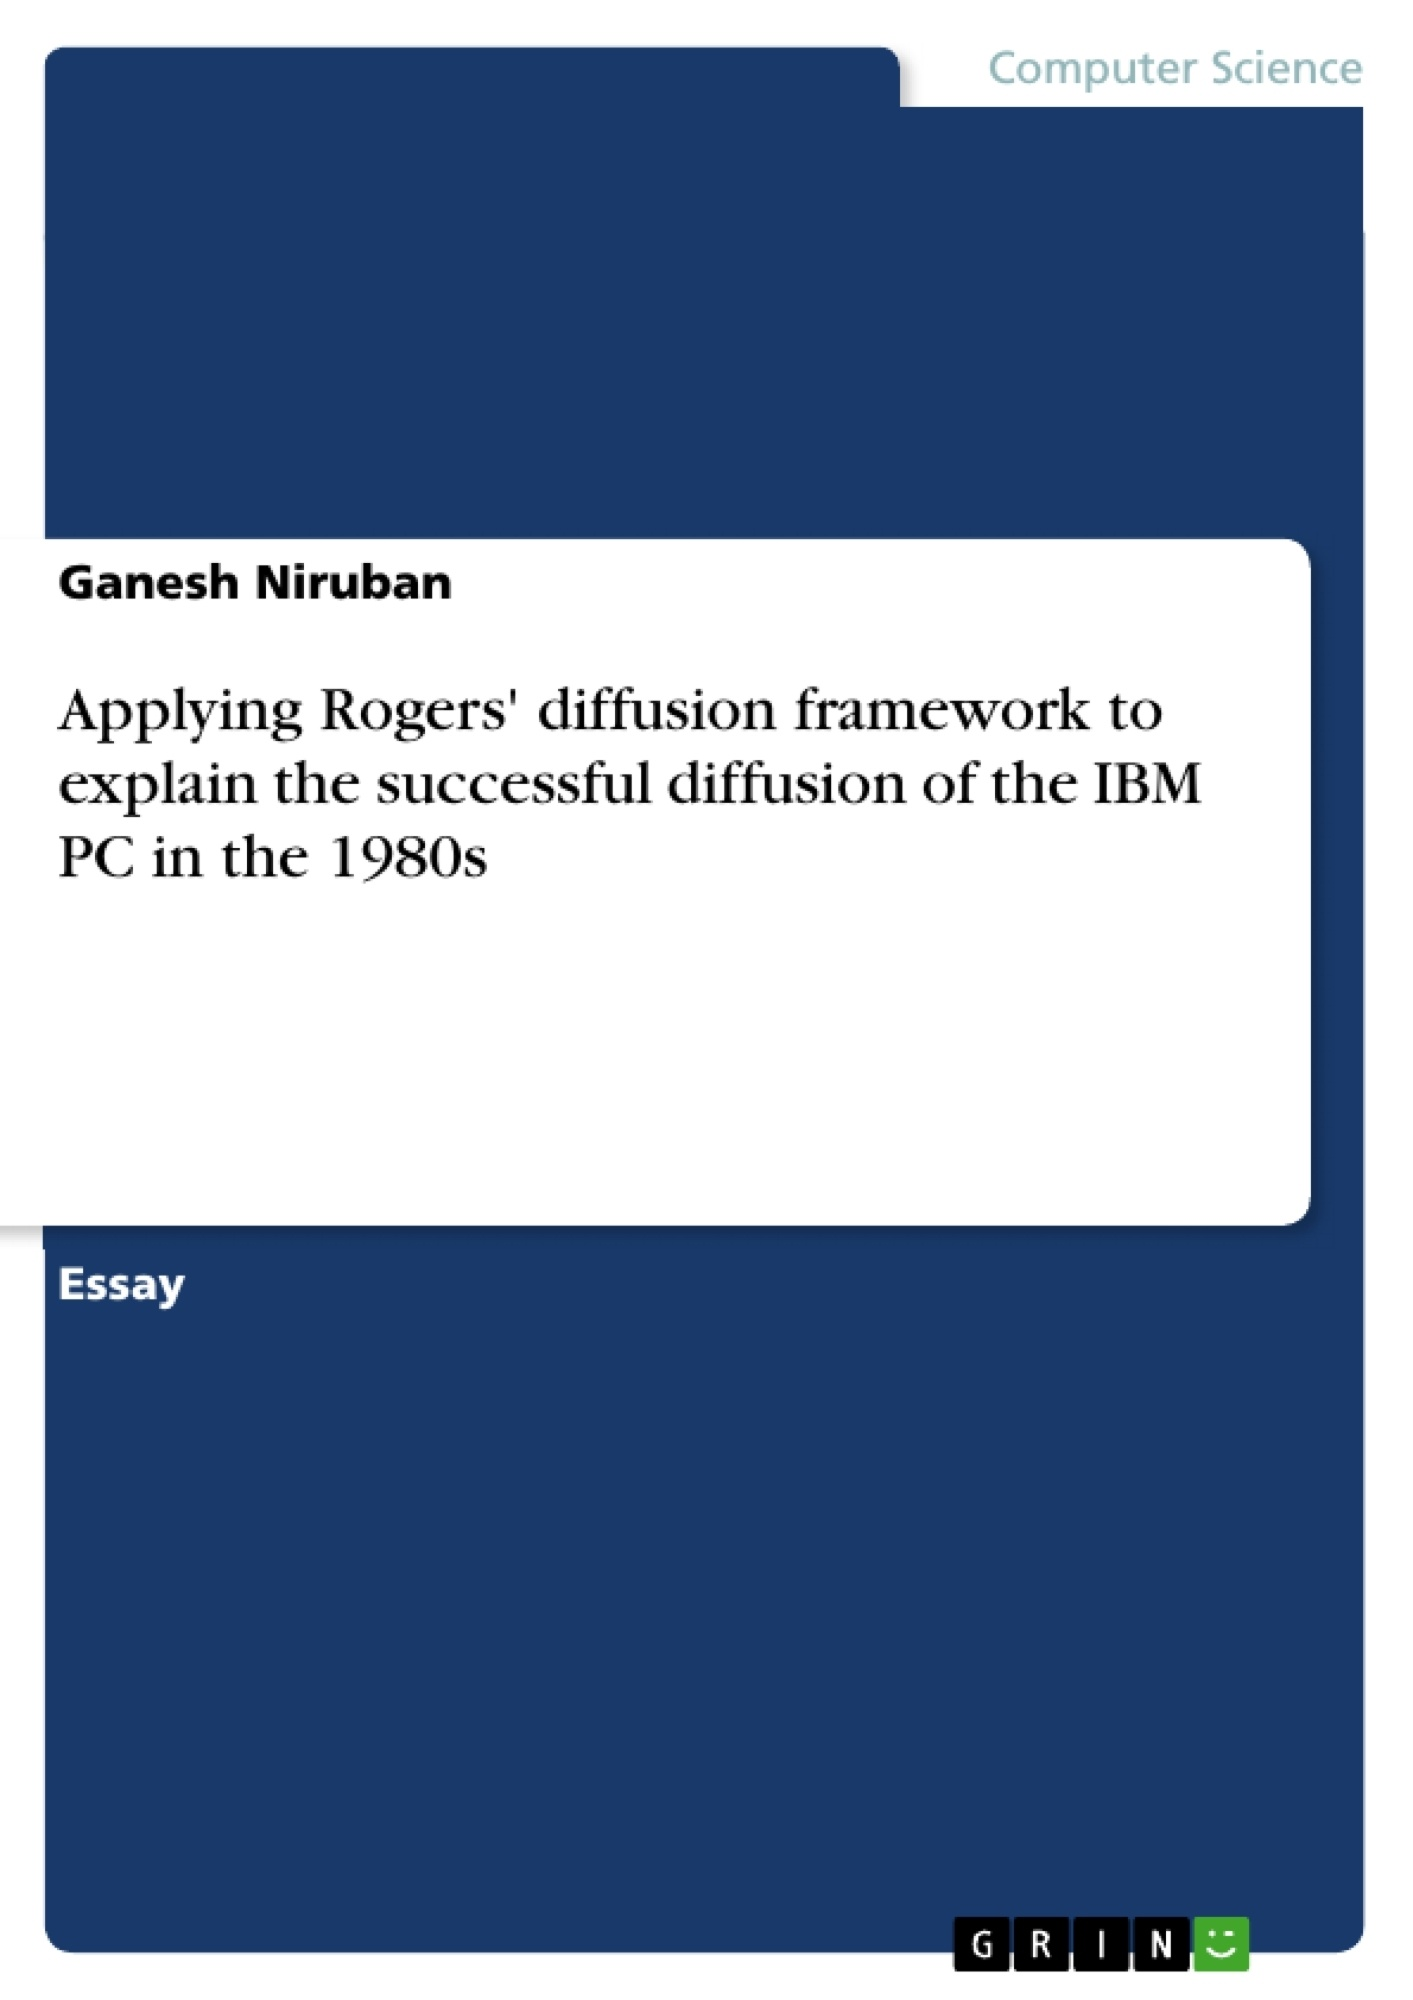 Title: Applying Rogers' diffusion framework to explain the successful diffusion of the IBM PC in the 1980s